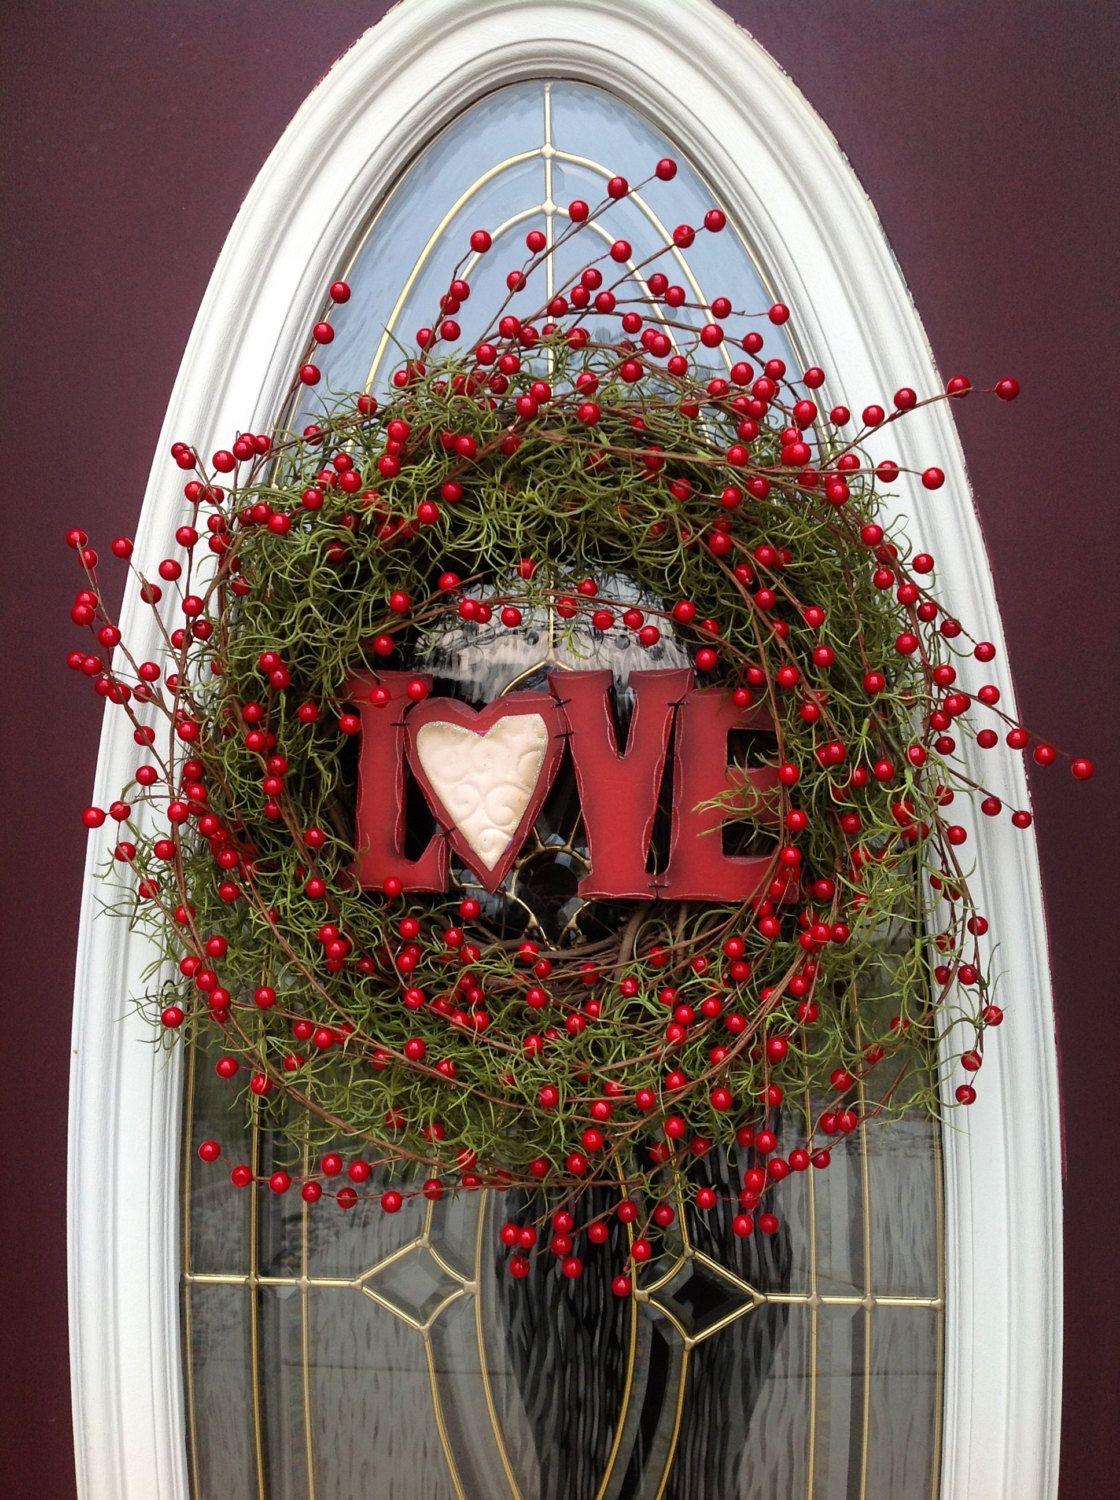 Valentineu0027s Day Grapevine Door Wreath Decor.